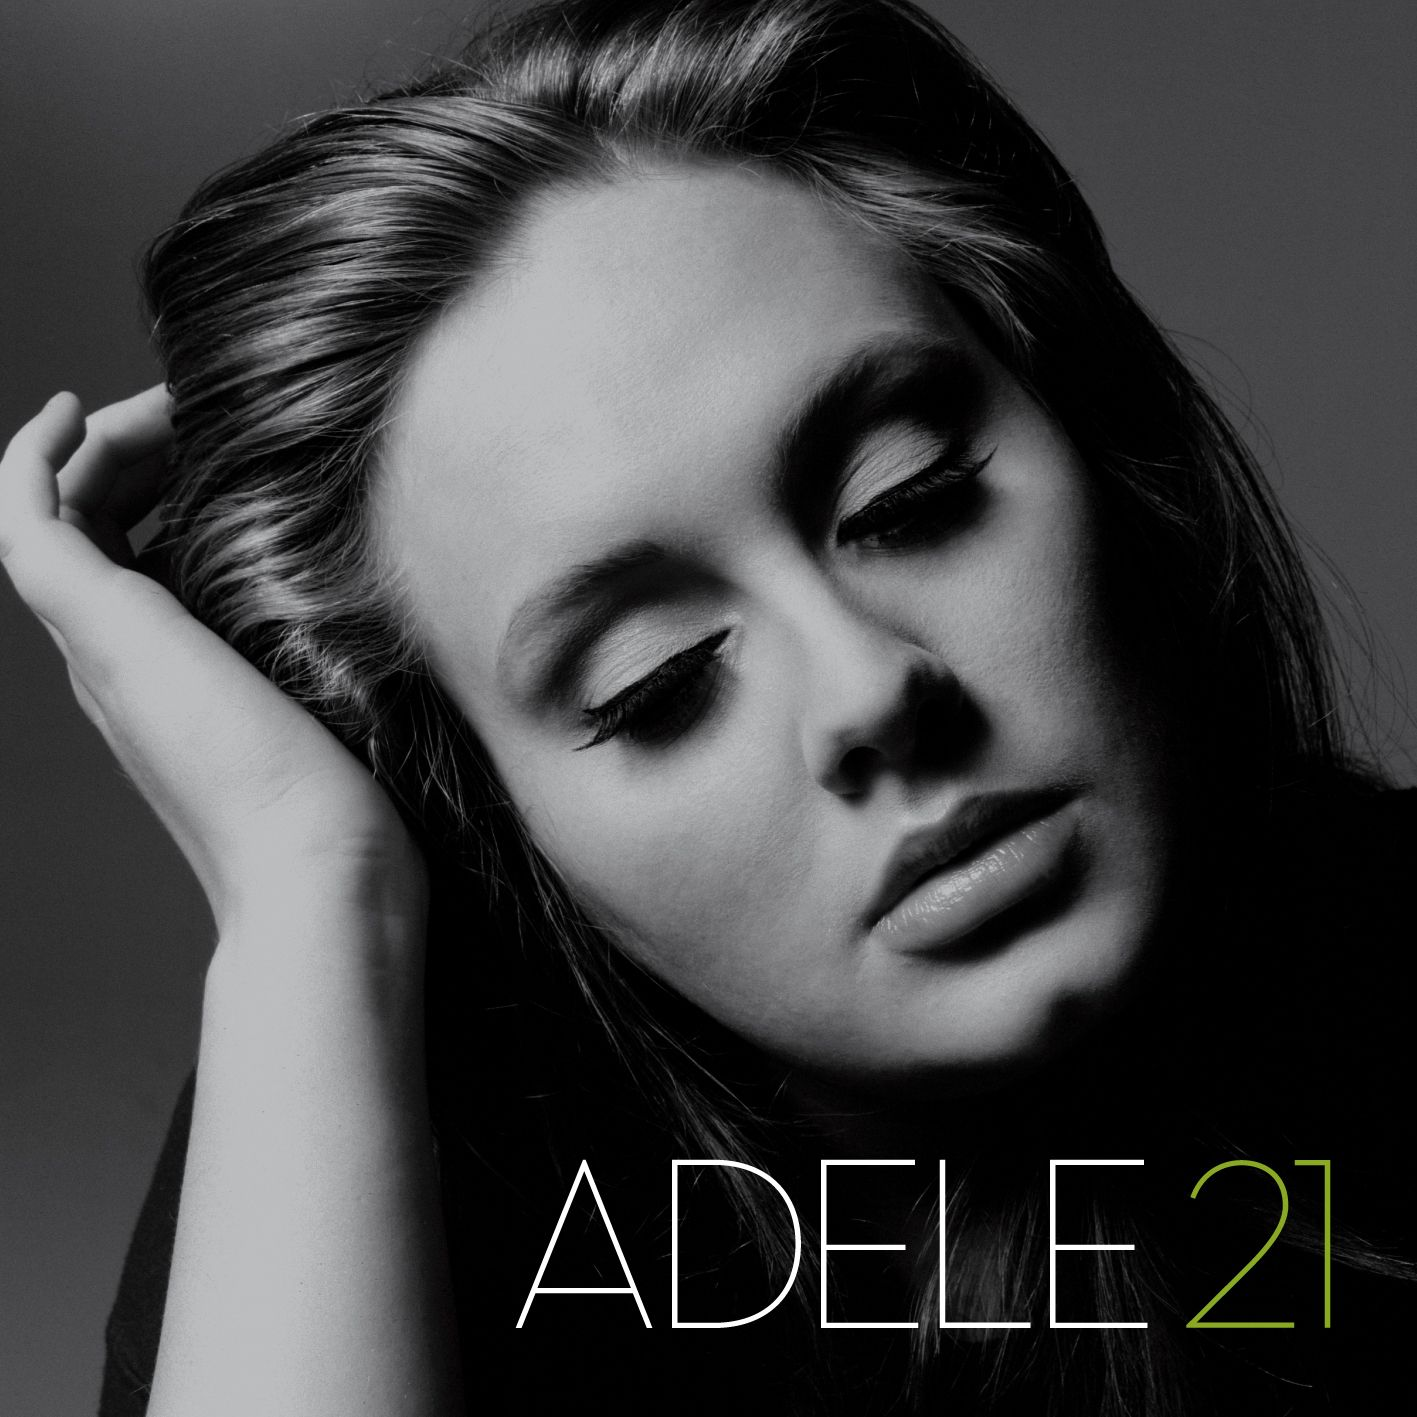 Adele - 21 album cover